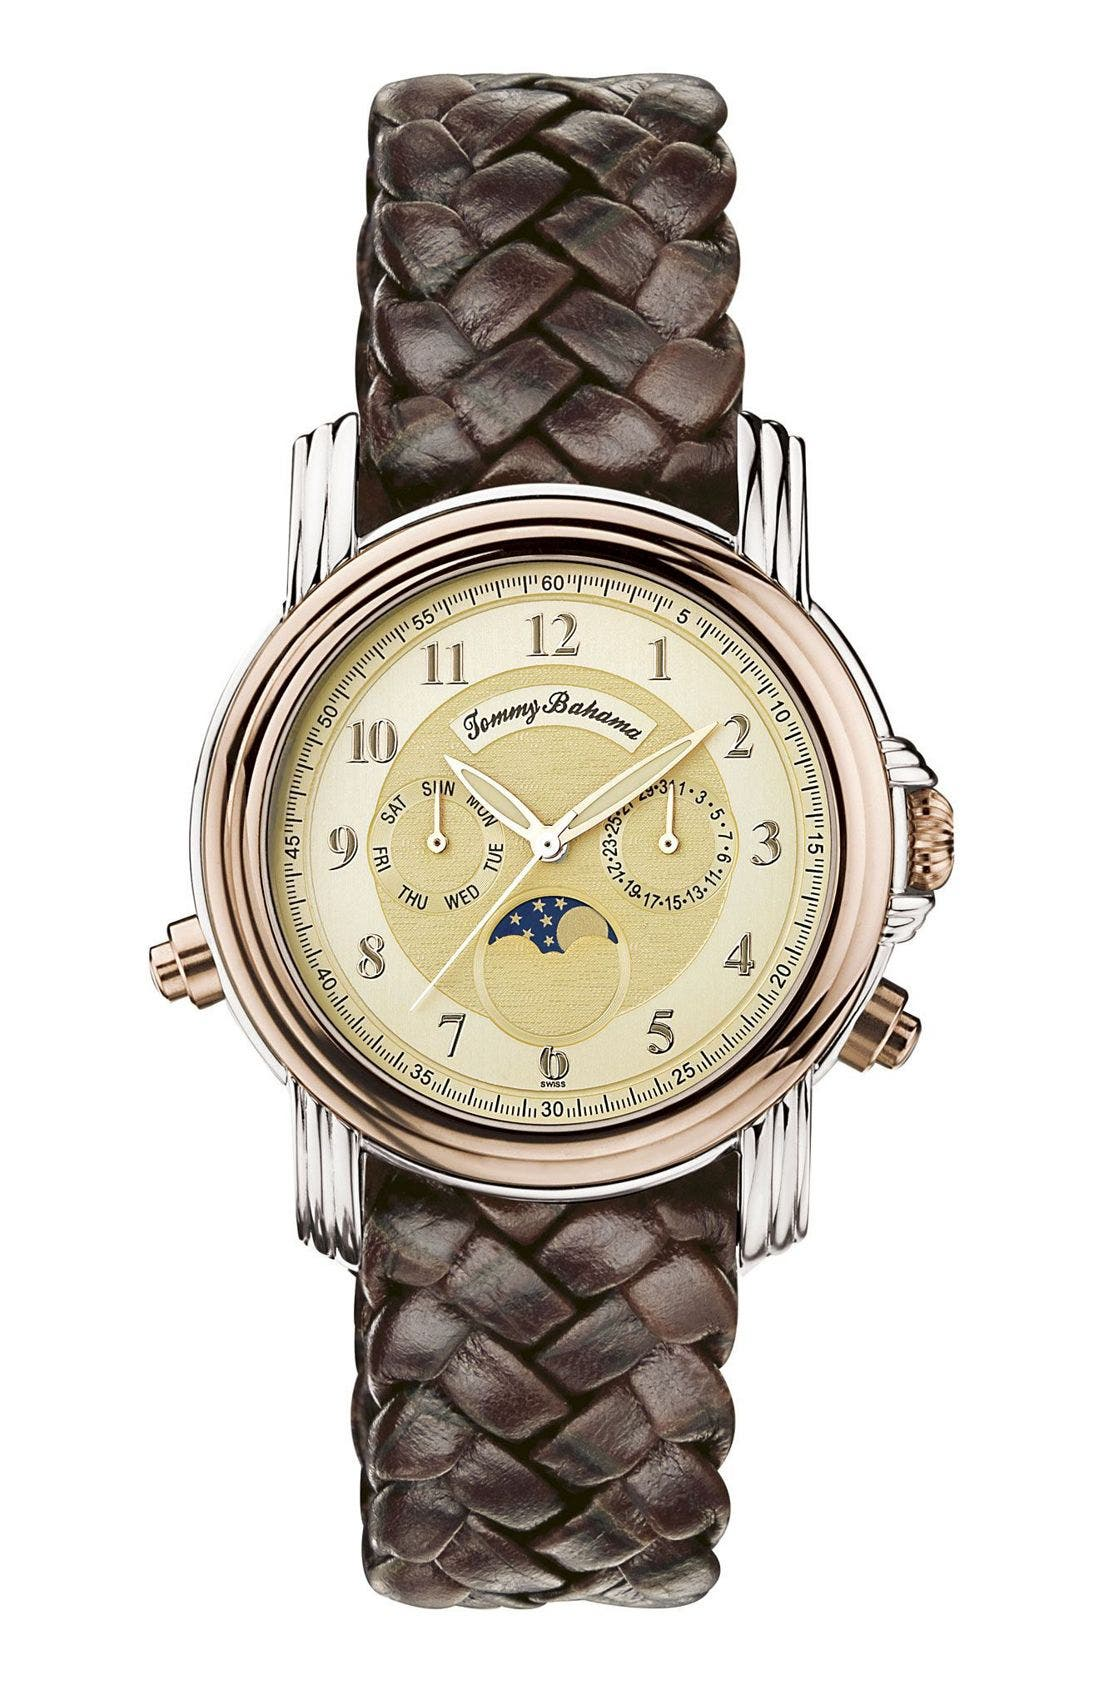 Main Image - Tommy Bahama Watches 'Steeling the Moon' Watch, 41mm